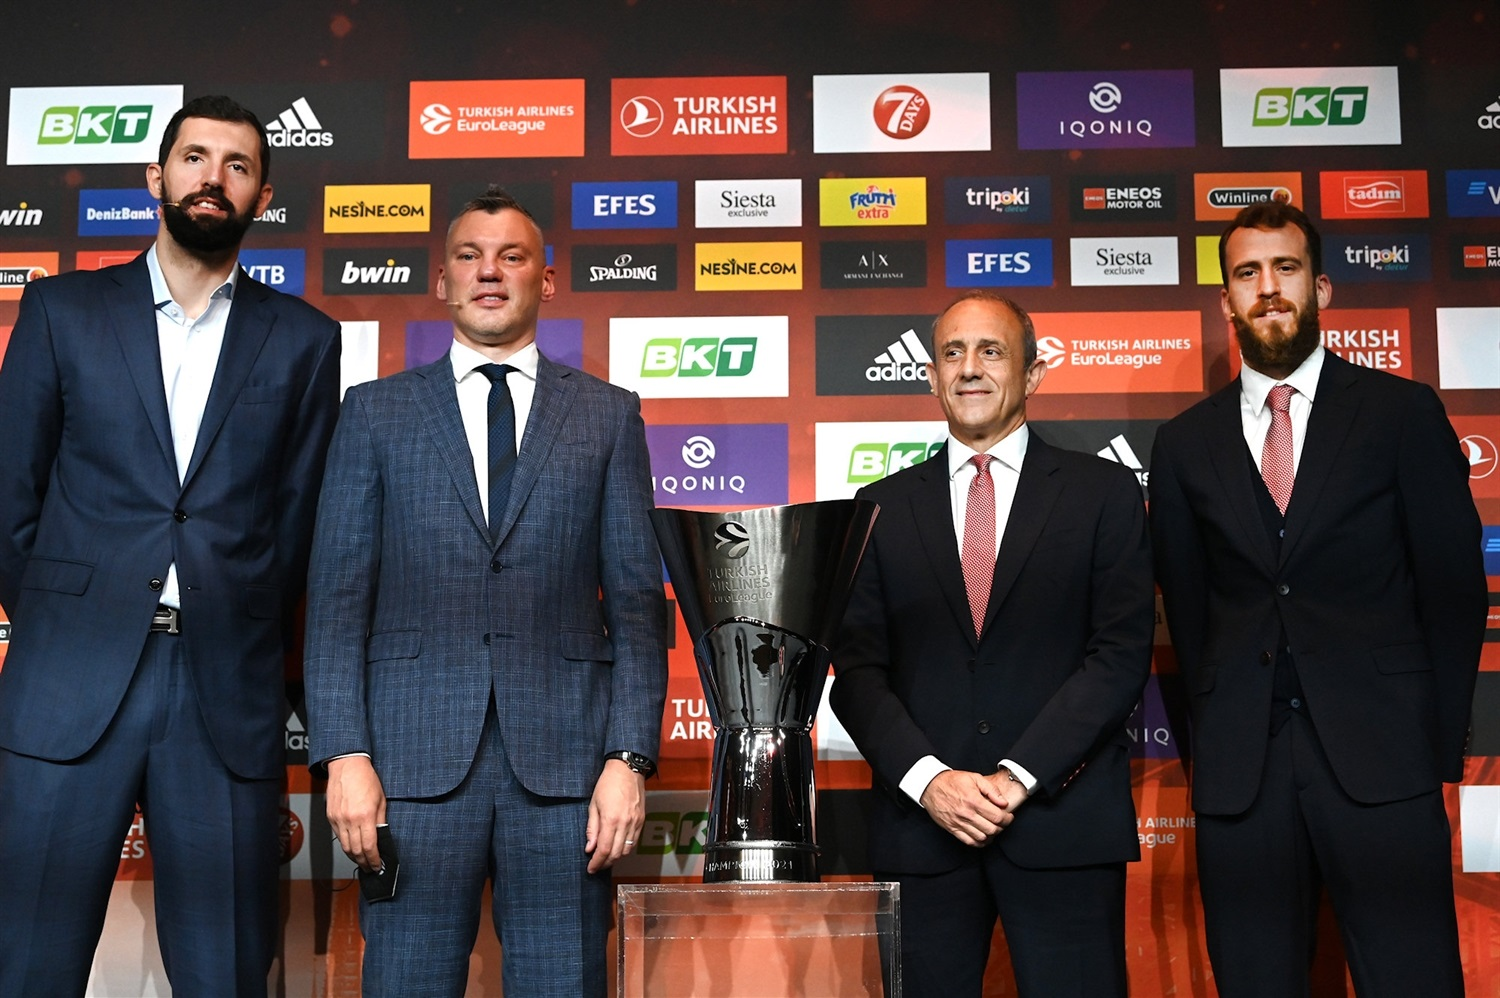 FC Barcelona vs. AX Exchange Armani Milan - Opening Press Conference - Final Four Cologne 2021 - EB20